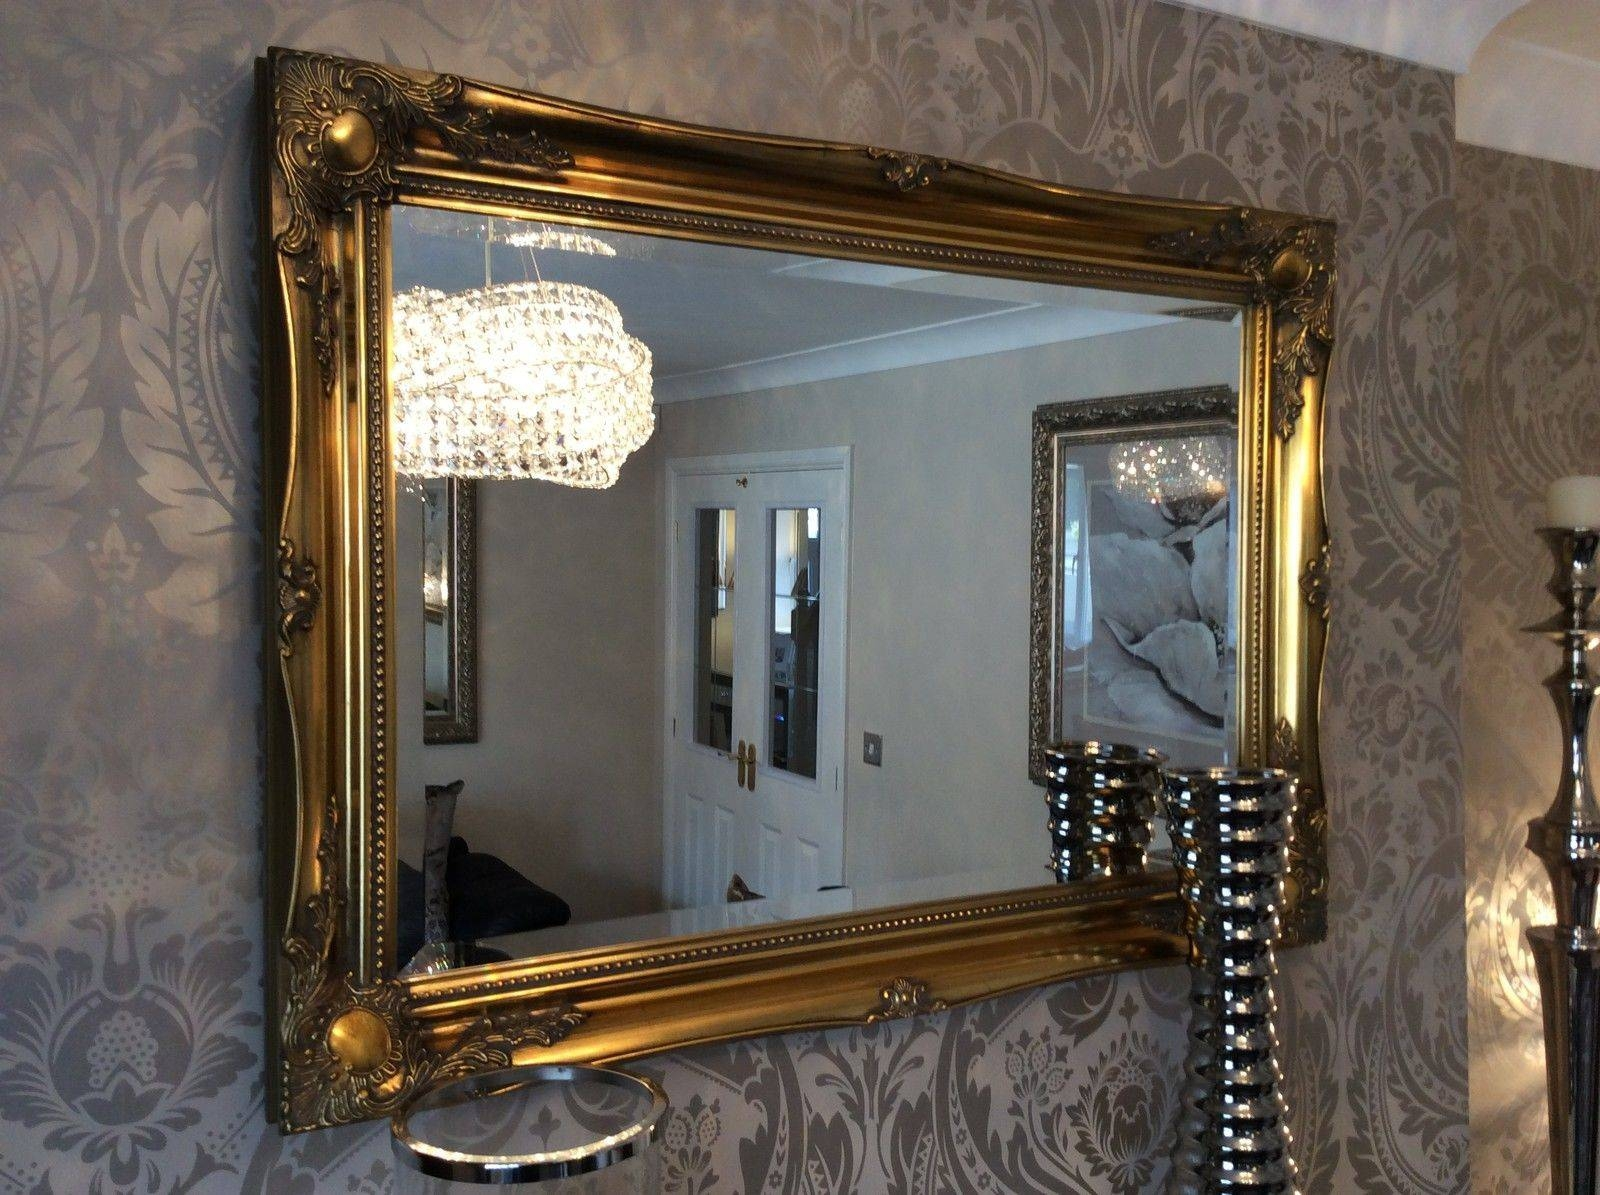 Classic Impression On Antique Wall Mirrors | Vwho pertaining to Vintage Overmantle Mirrors (Image 9 of 25)